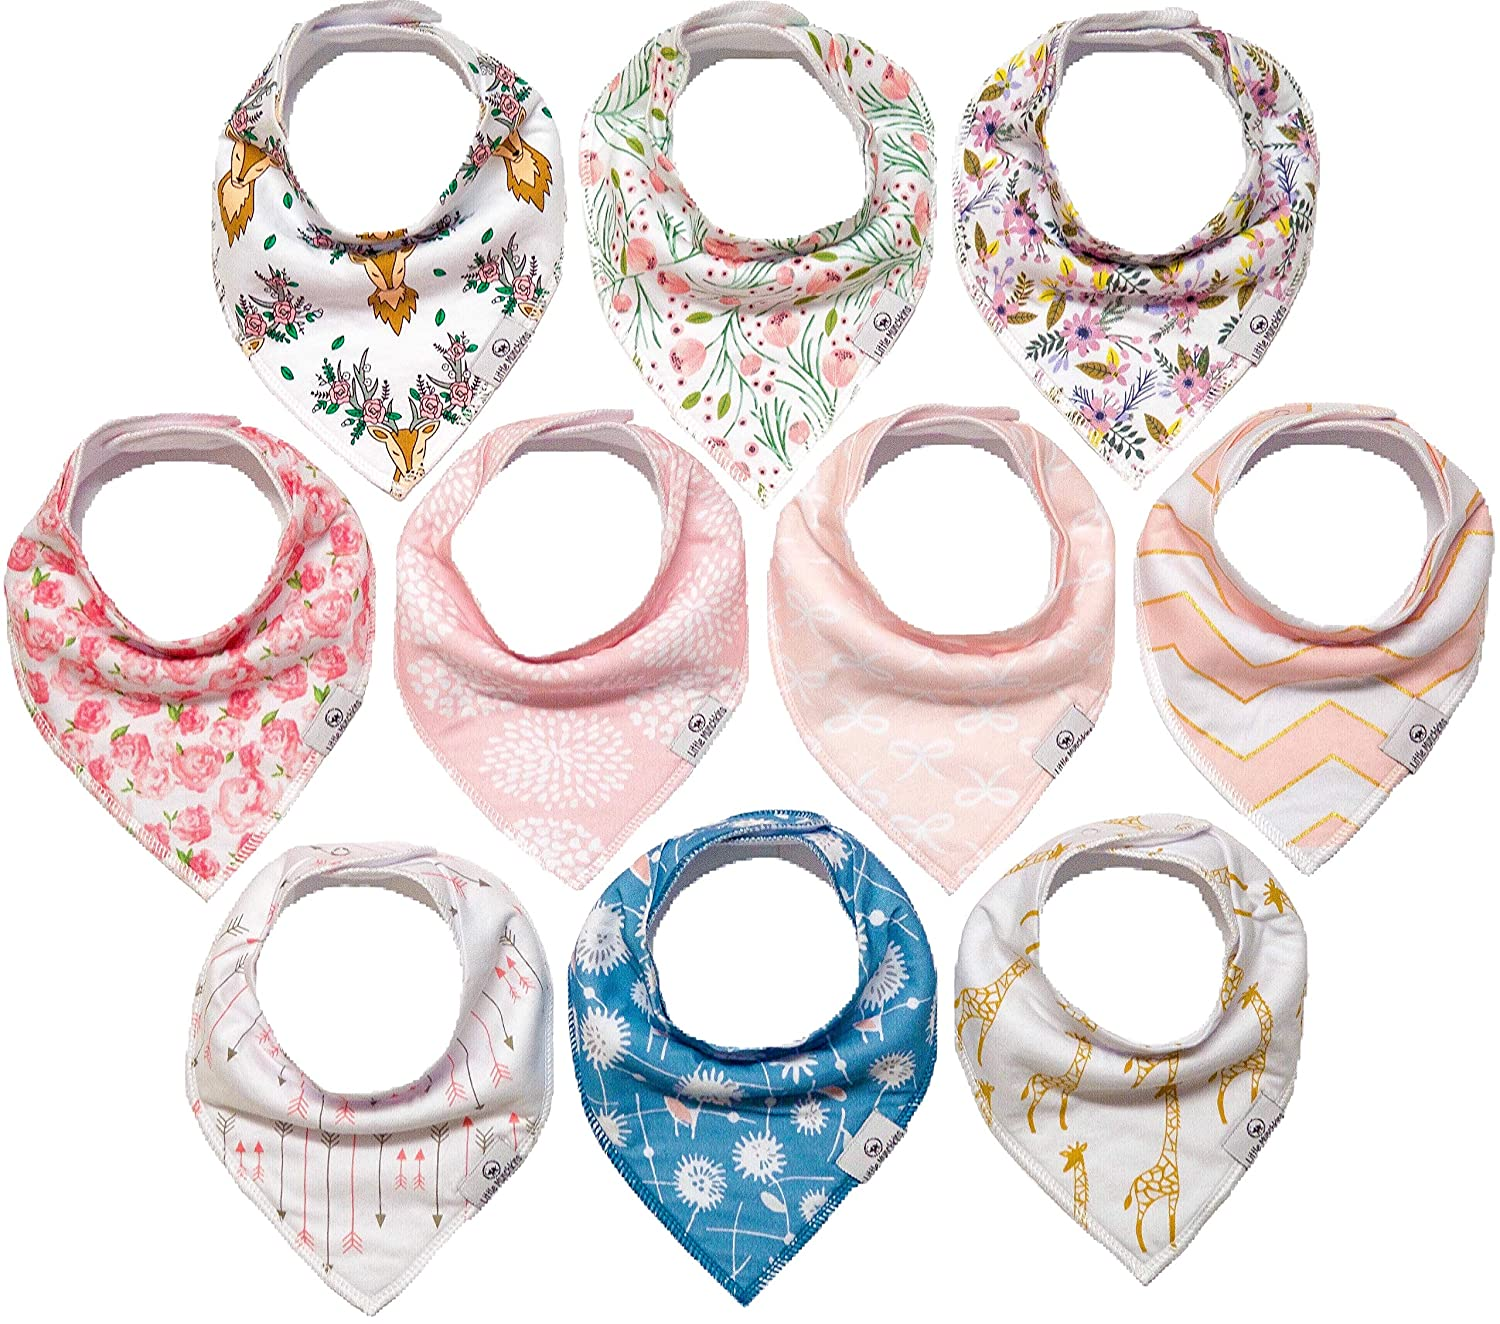 10-Pack Girl Bandana Bibs Little Munchkins Handkerchief Bibs, Baby Drool Bibdanas, Organic Cotton, Super Absorbent, 10 Stylish Designs for Baby Girls Toddler, Adjustable Snaps LittleMunchkins